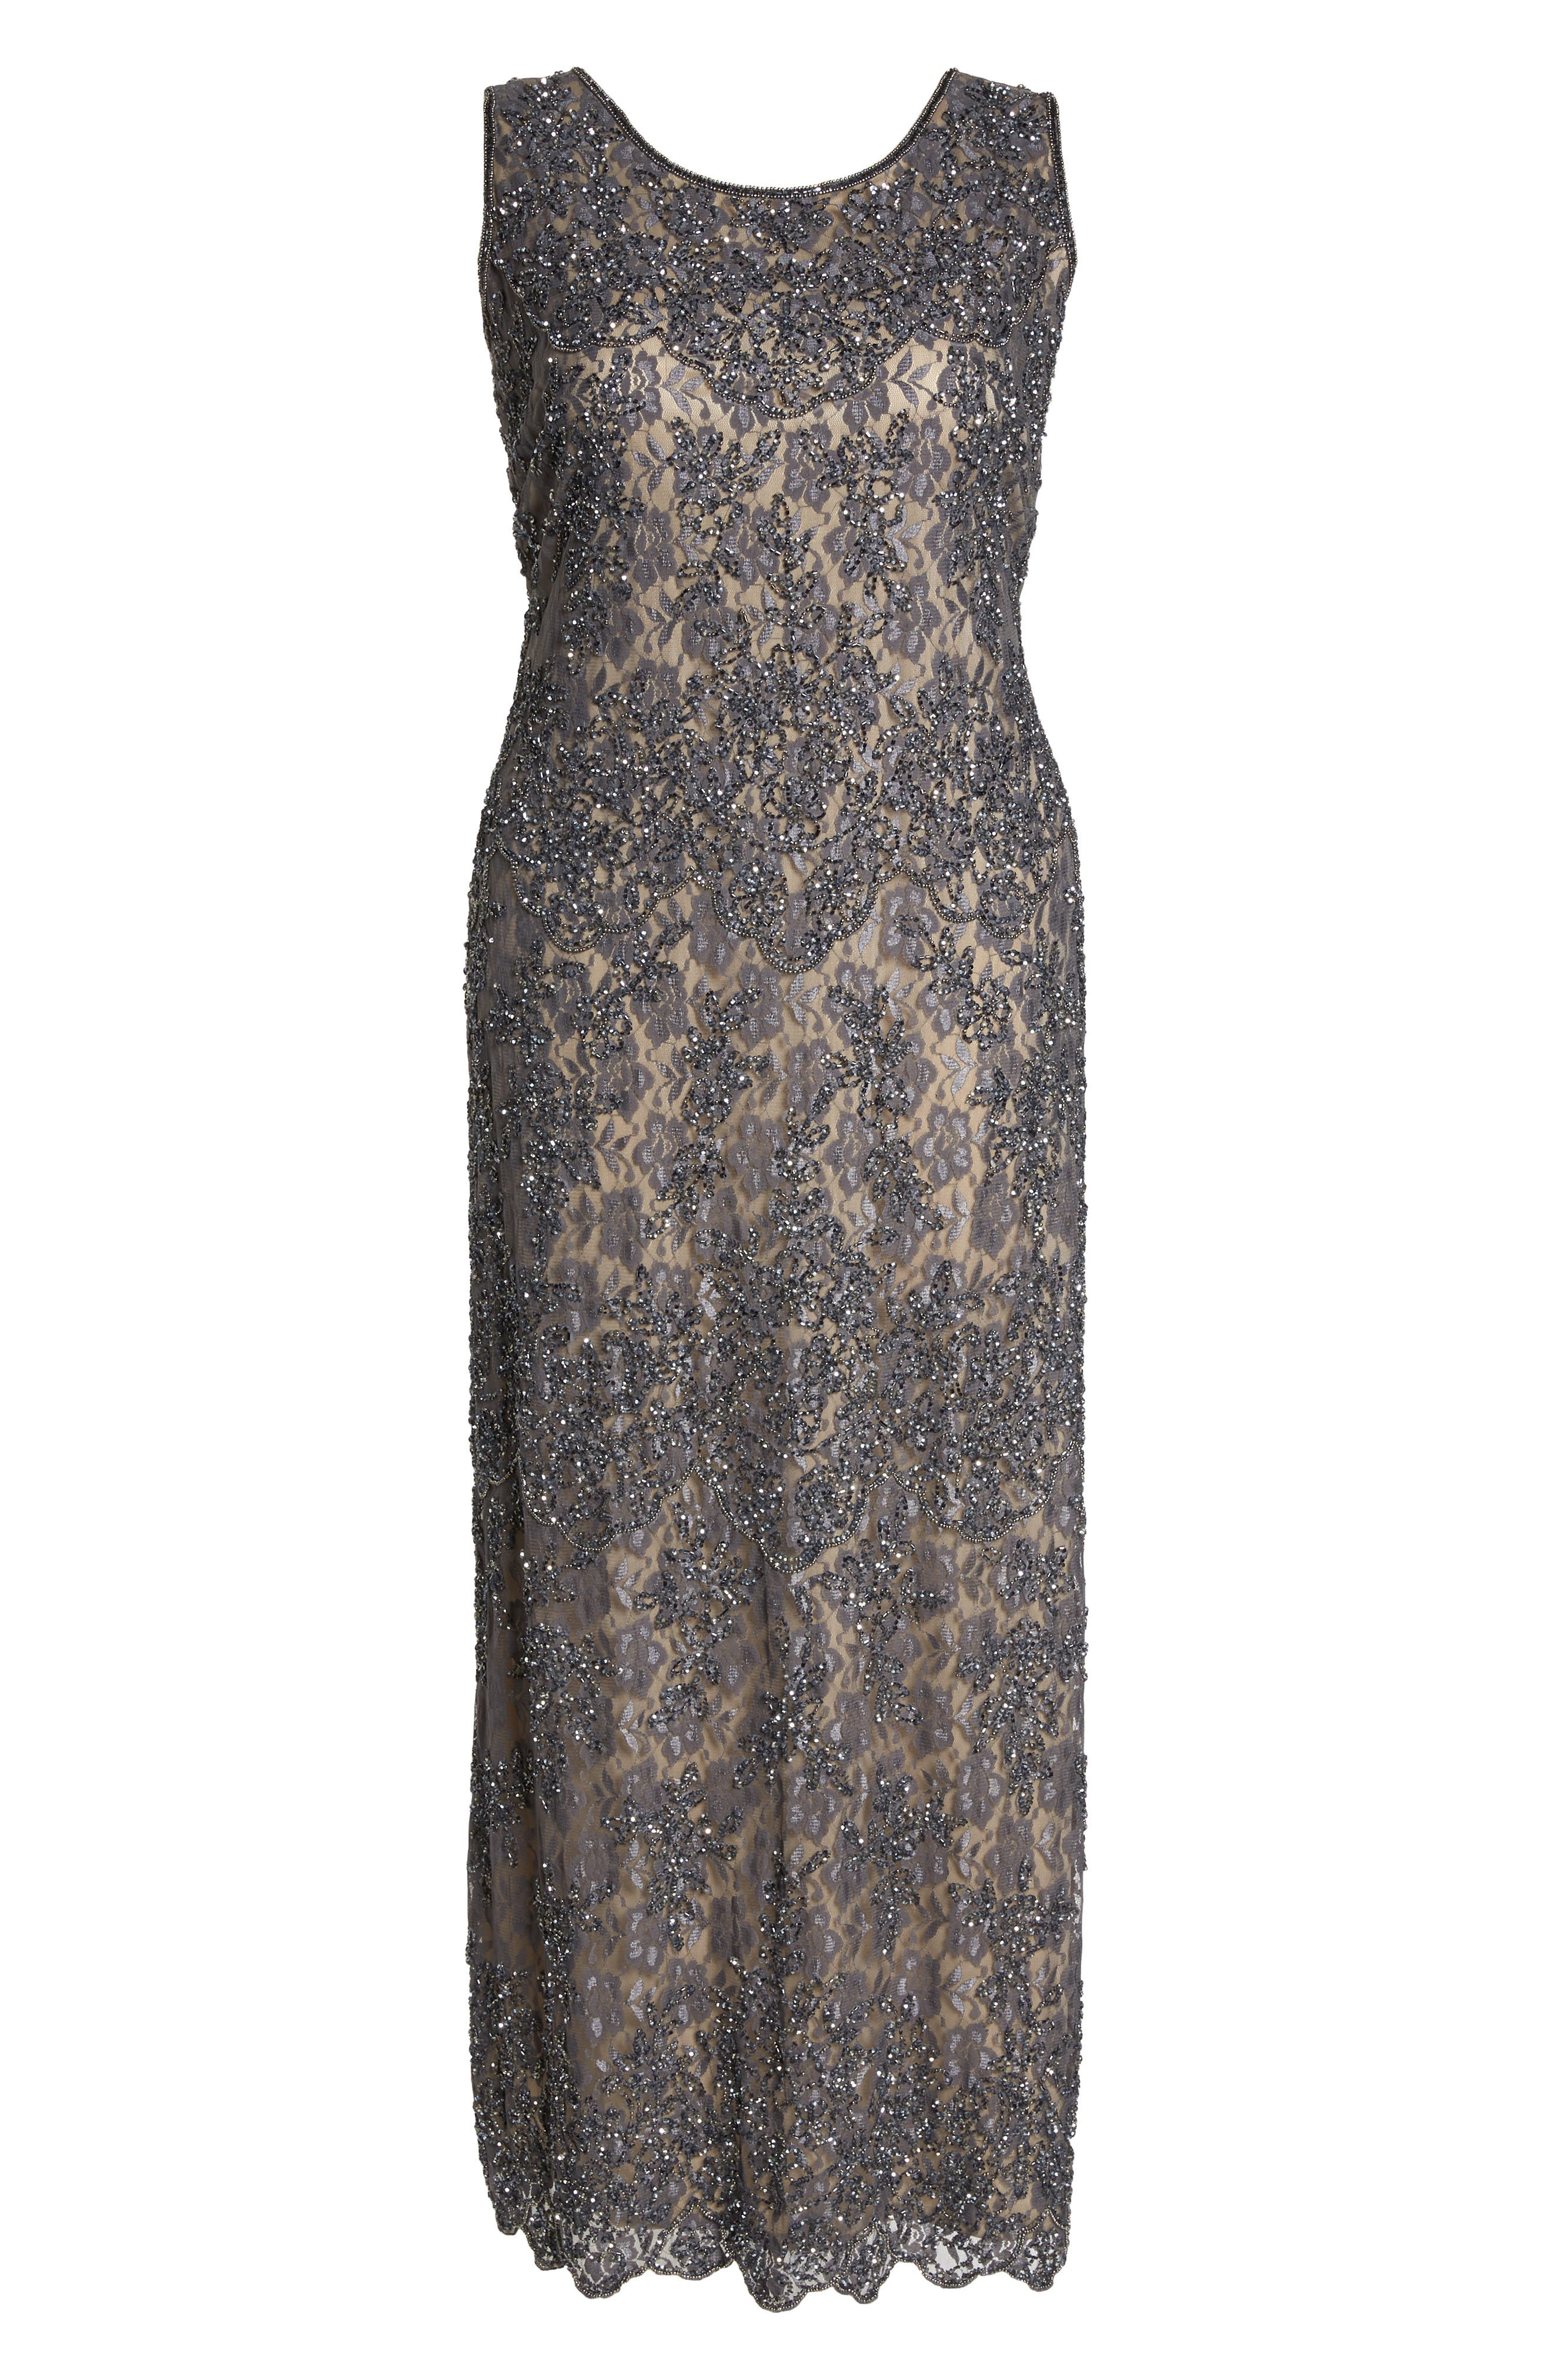 Embellished Lace A-Line Dress,                             Alternate thumbnail 5, color,                             Graphite